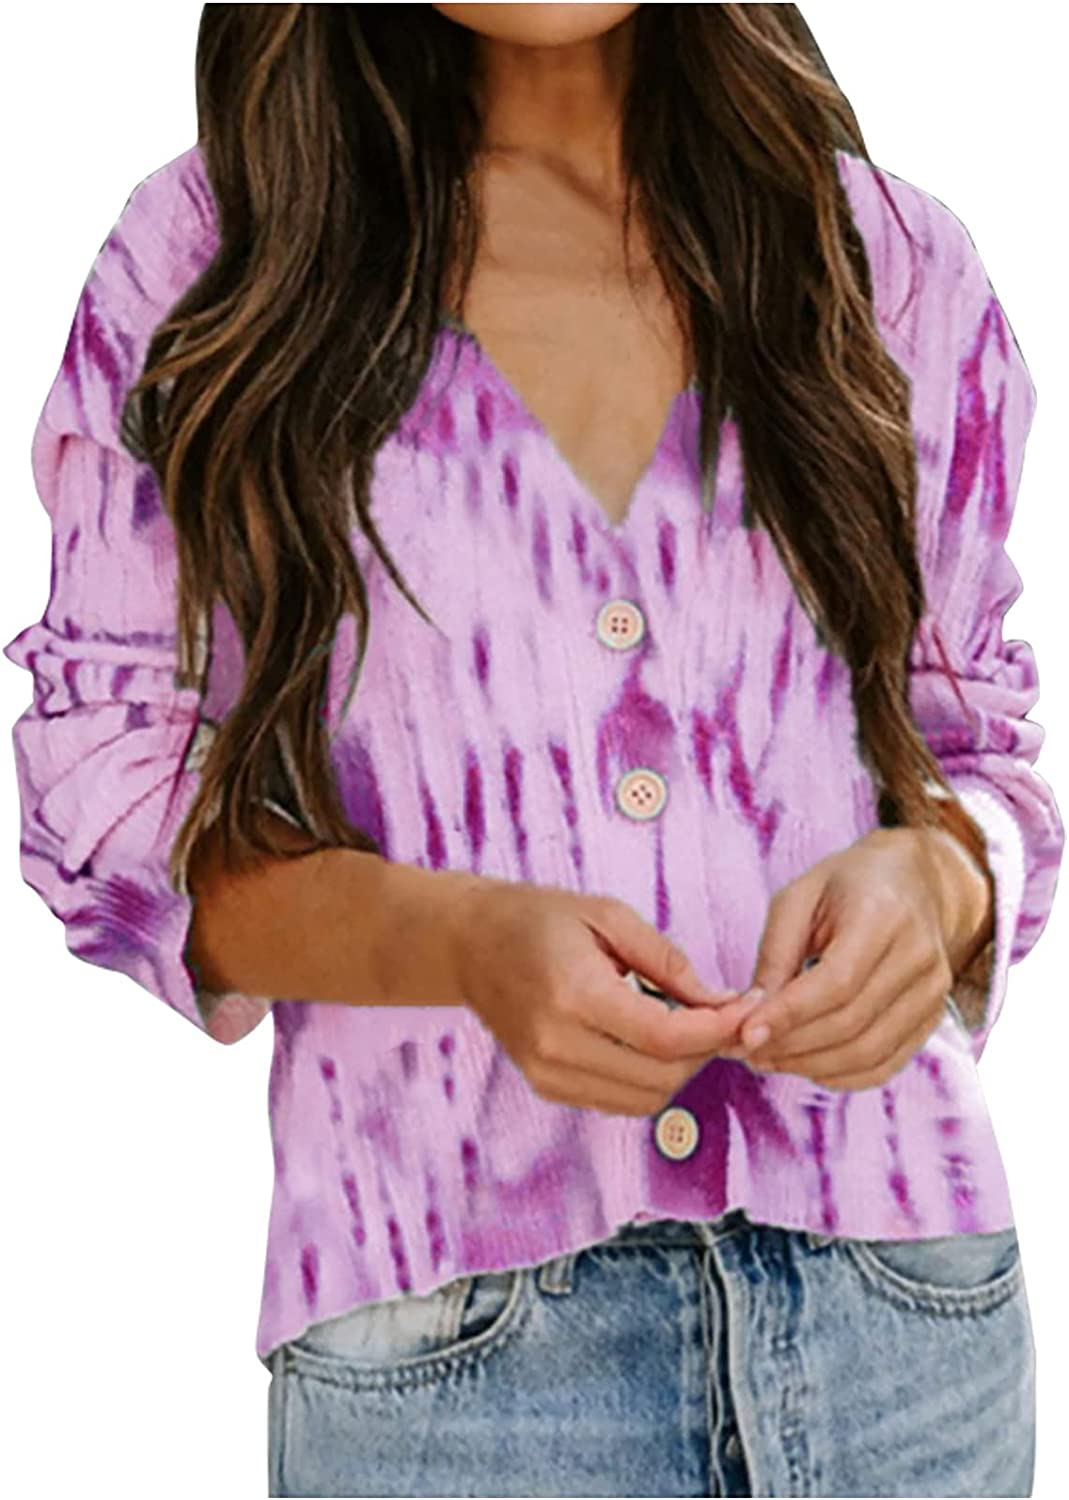 Blouses & Button-Down Shirts V-Neck Tie-dye Gradient Cardigan Open Front Loose Sweater Knit Long Sleeve Jacket